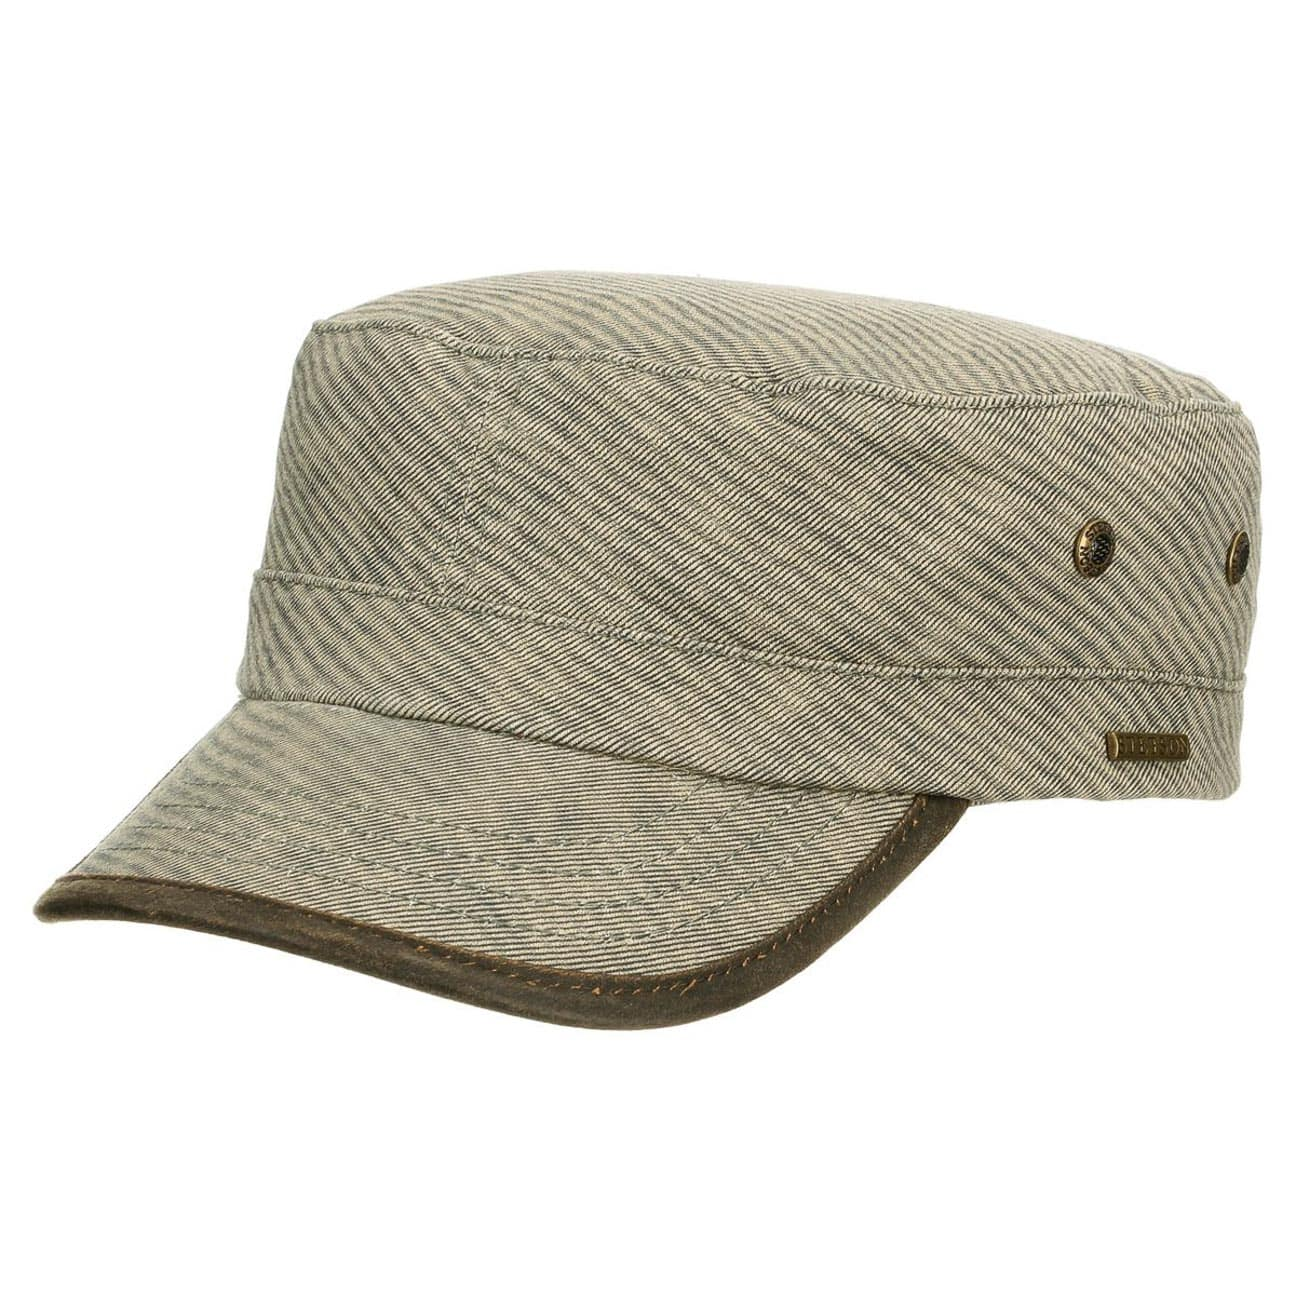 Datto Stripes Army Cap by Stetson - olive 1 ... ba02f18e9b